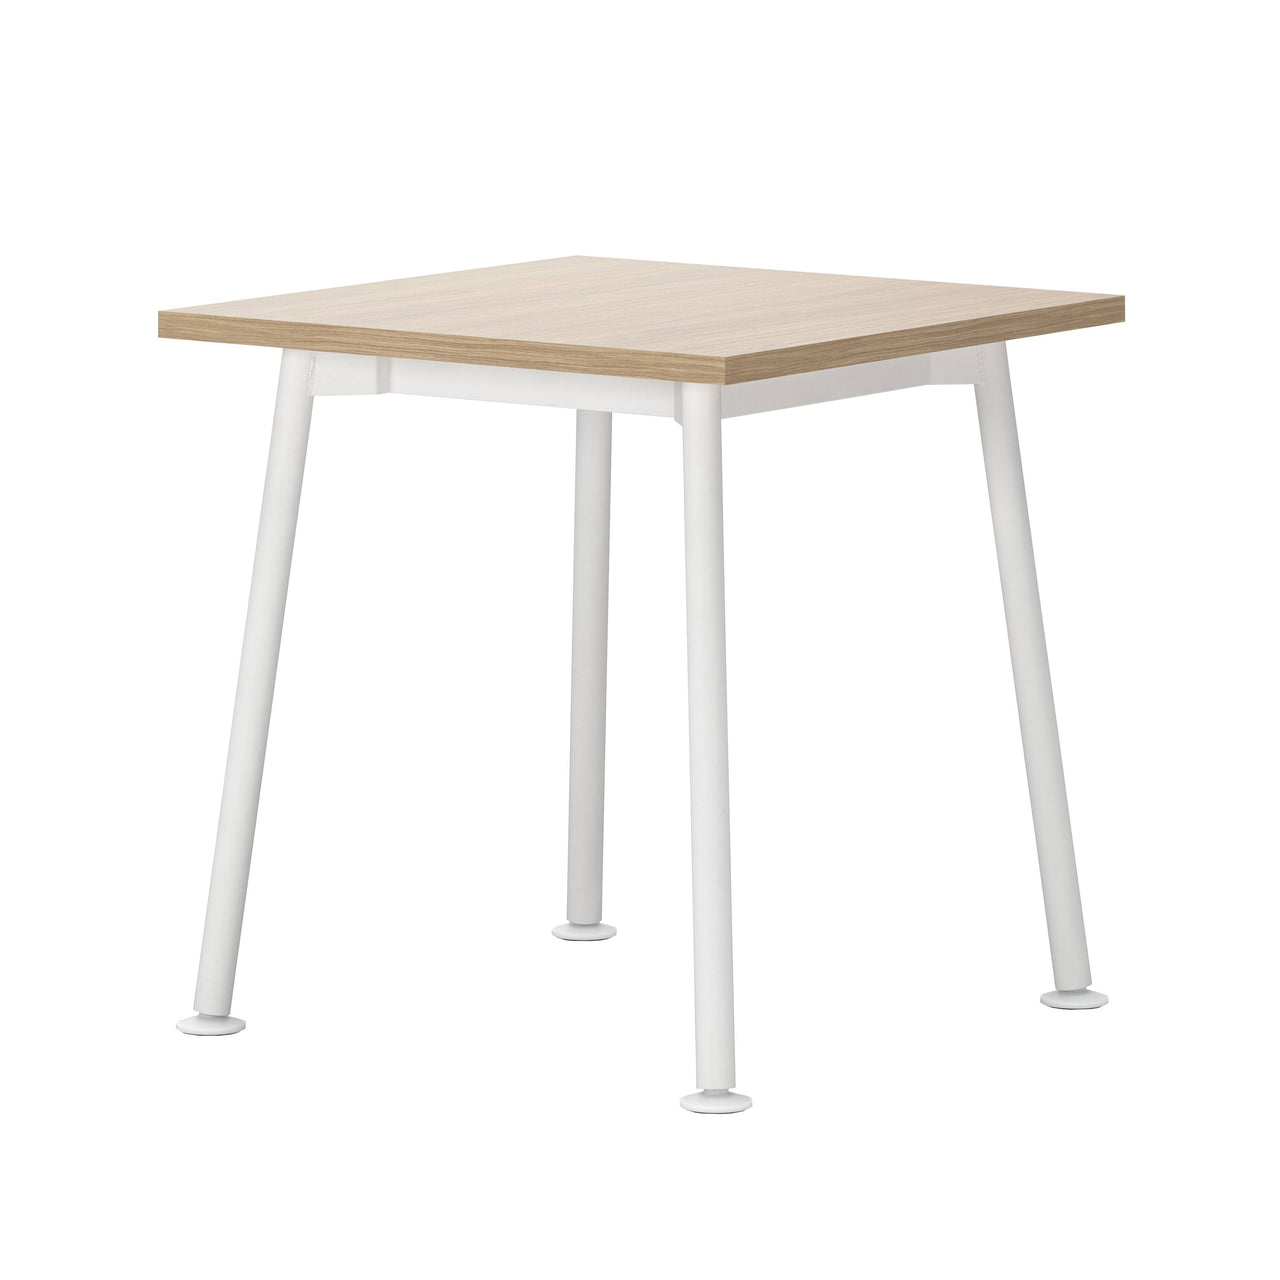 Landa Table: Square + Oak Veneer + White